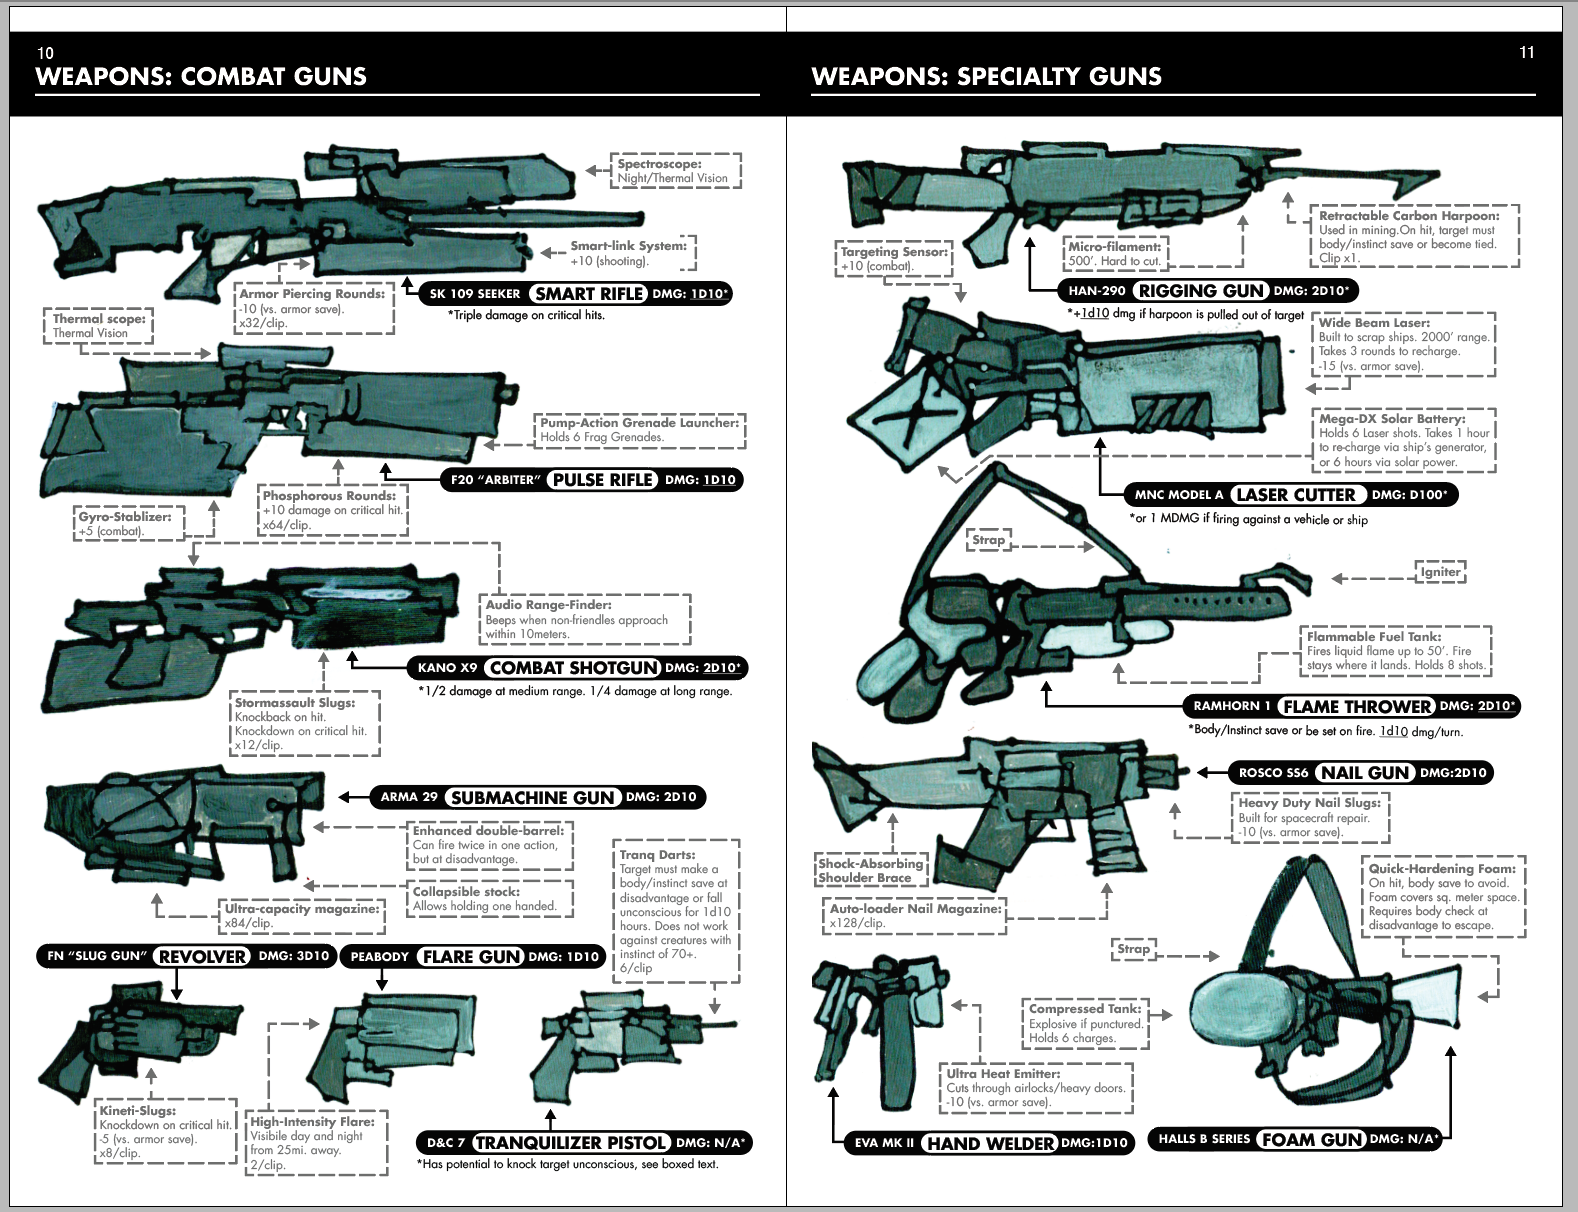 The Guns page spread